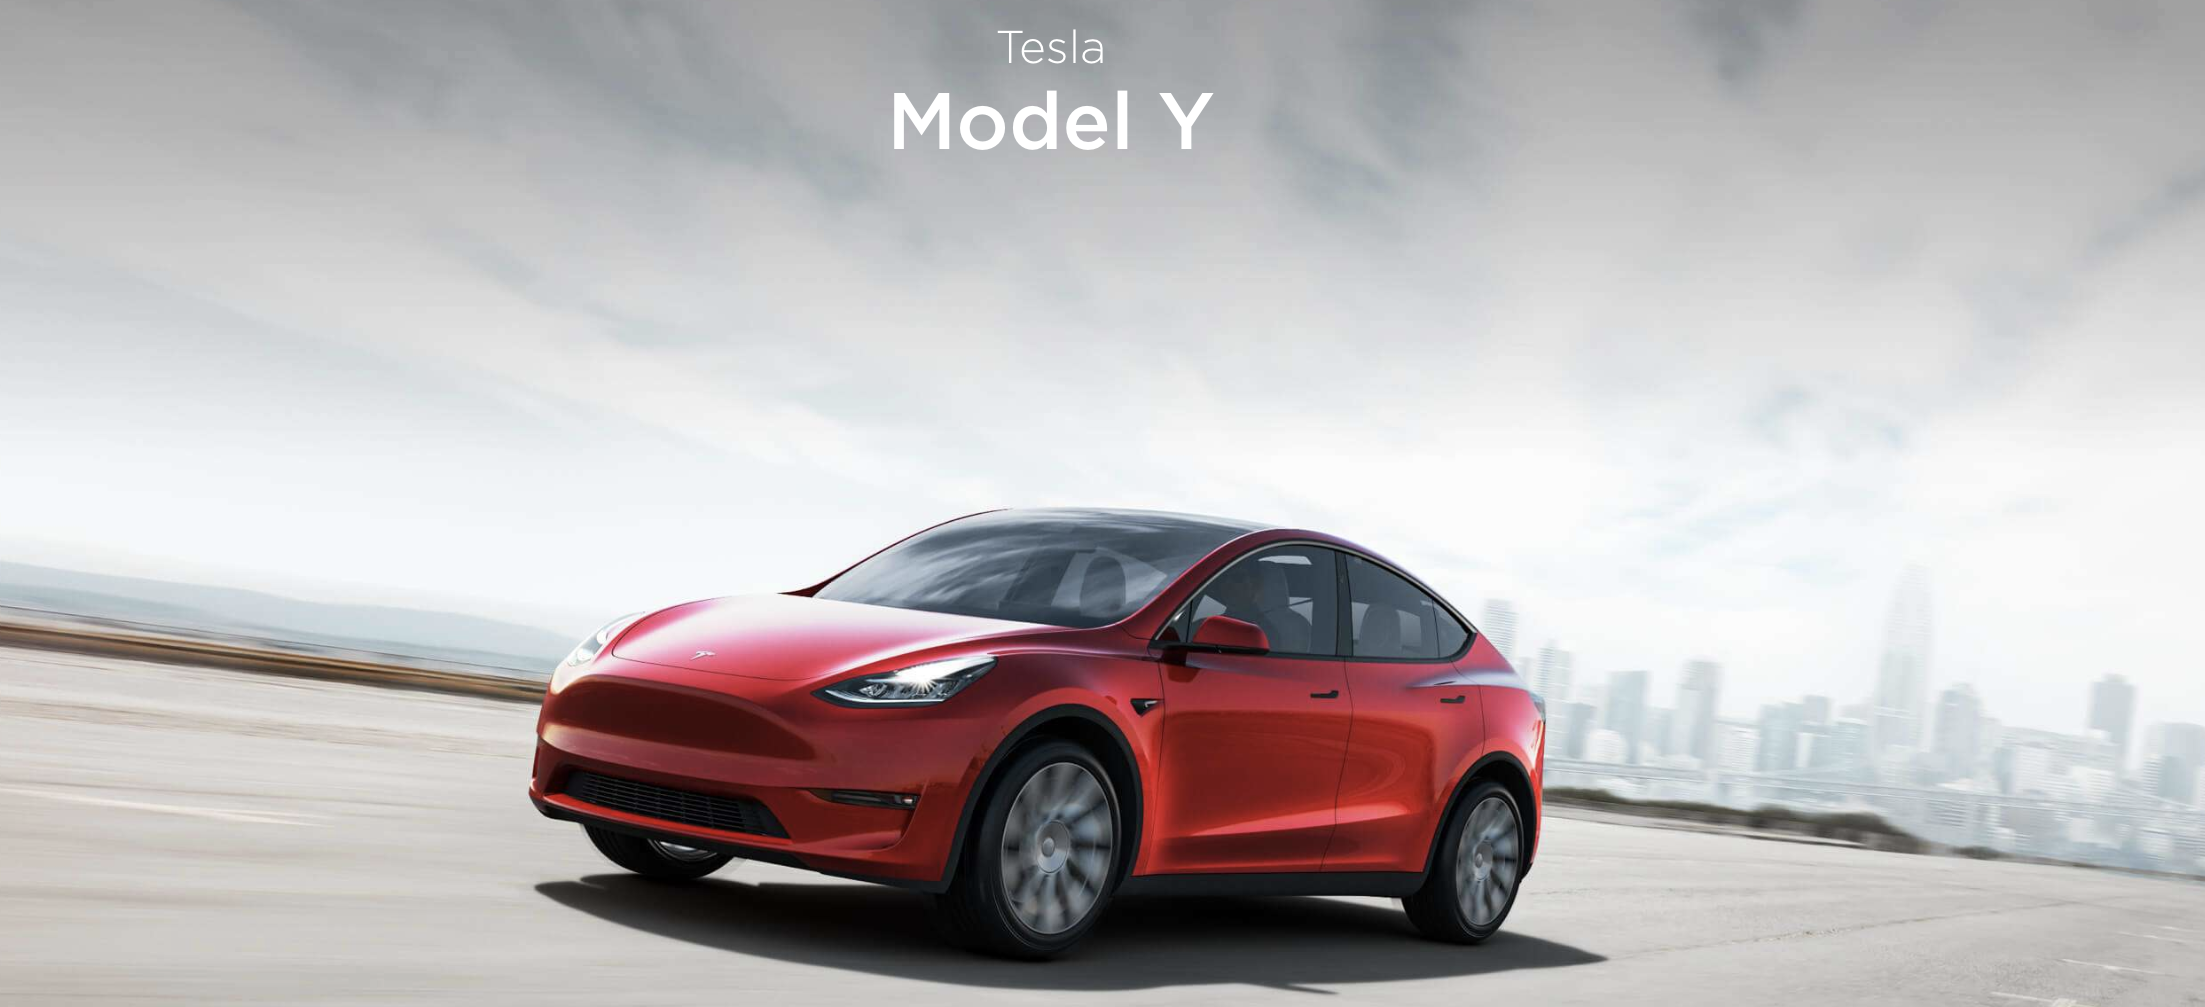 Tesla launches the Model Y